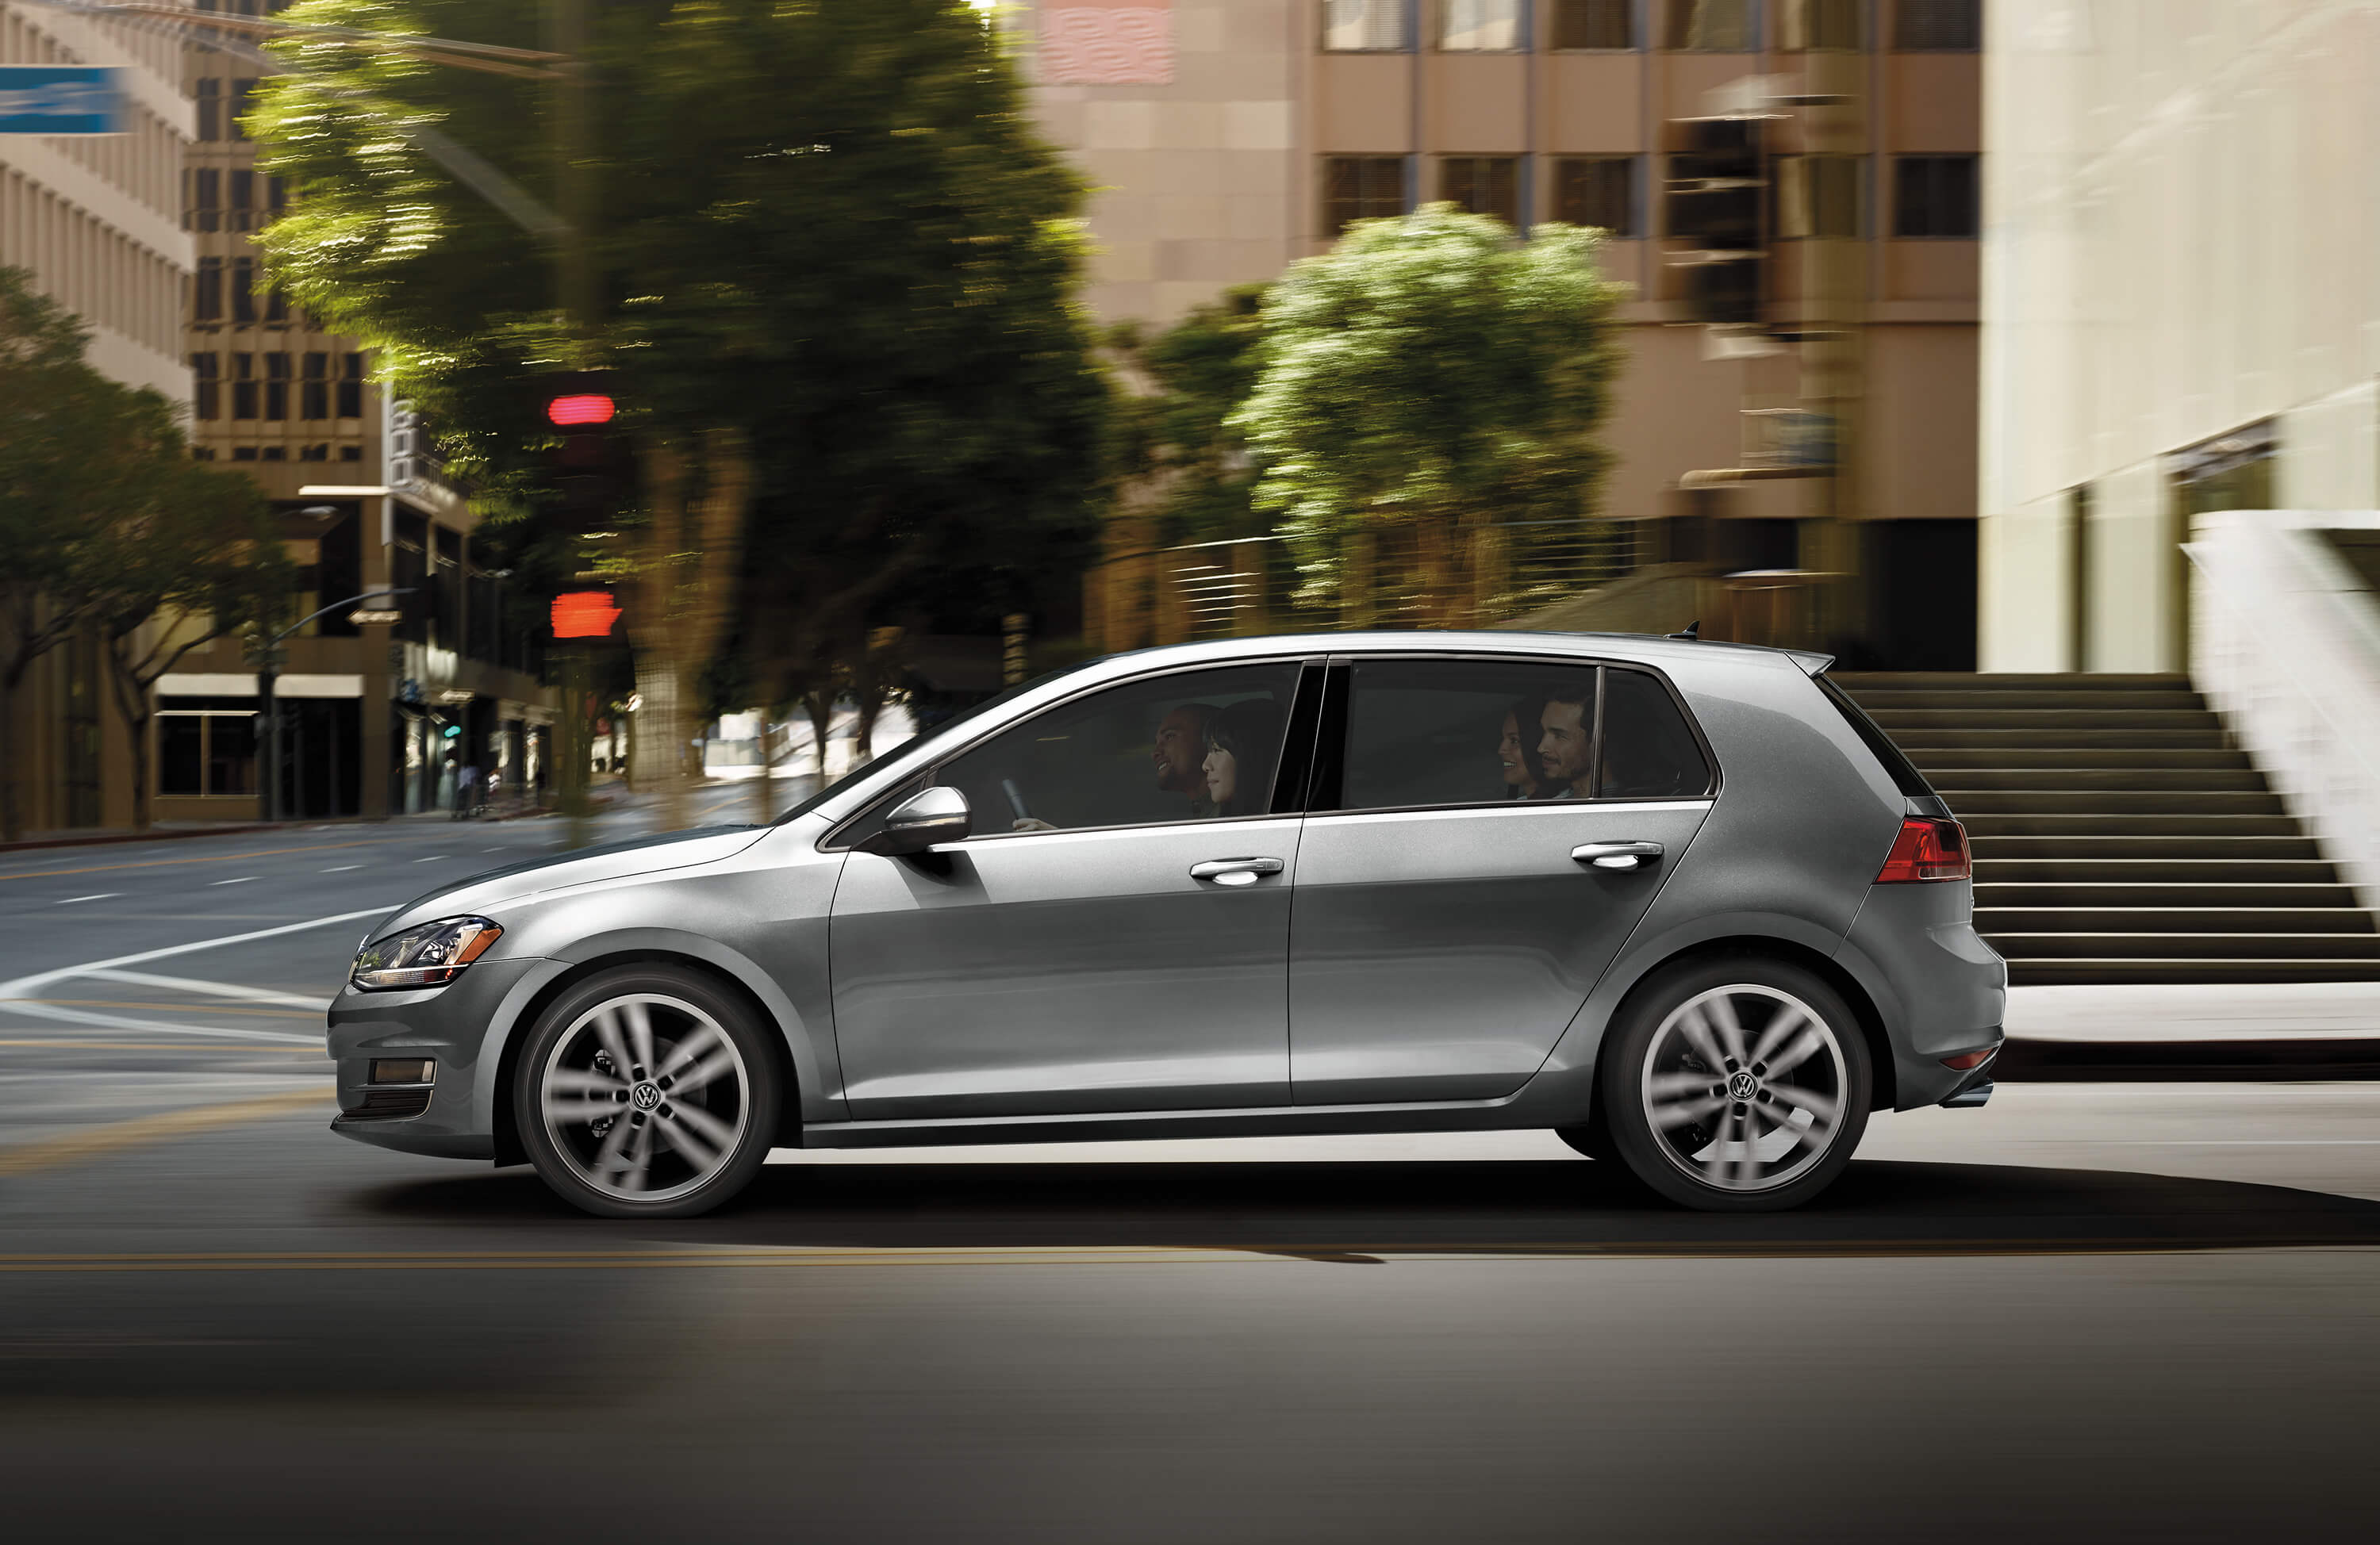 New Volkswagen Golf Lease Deals & Finance fers Van Nuys CA